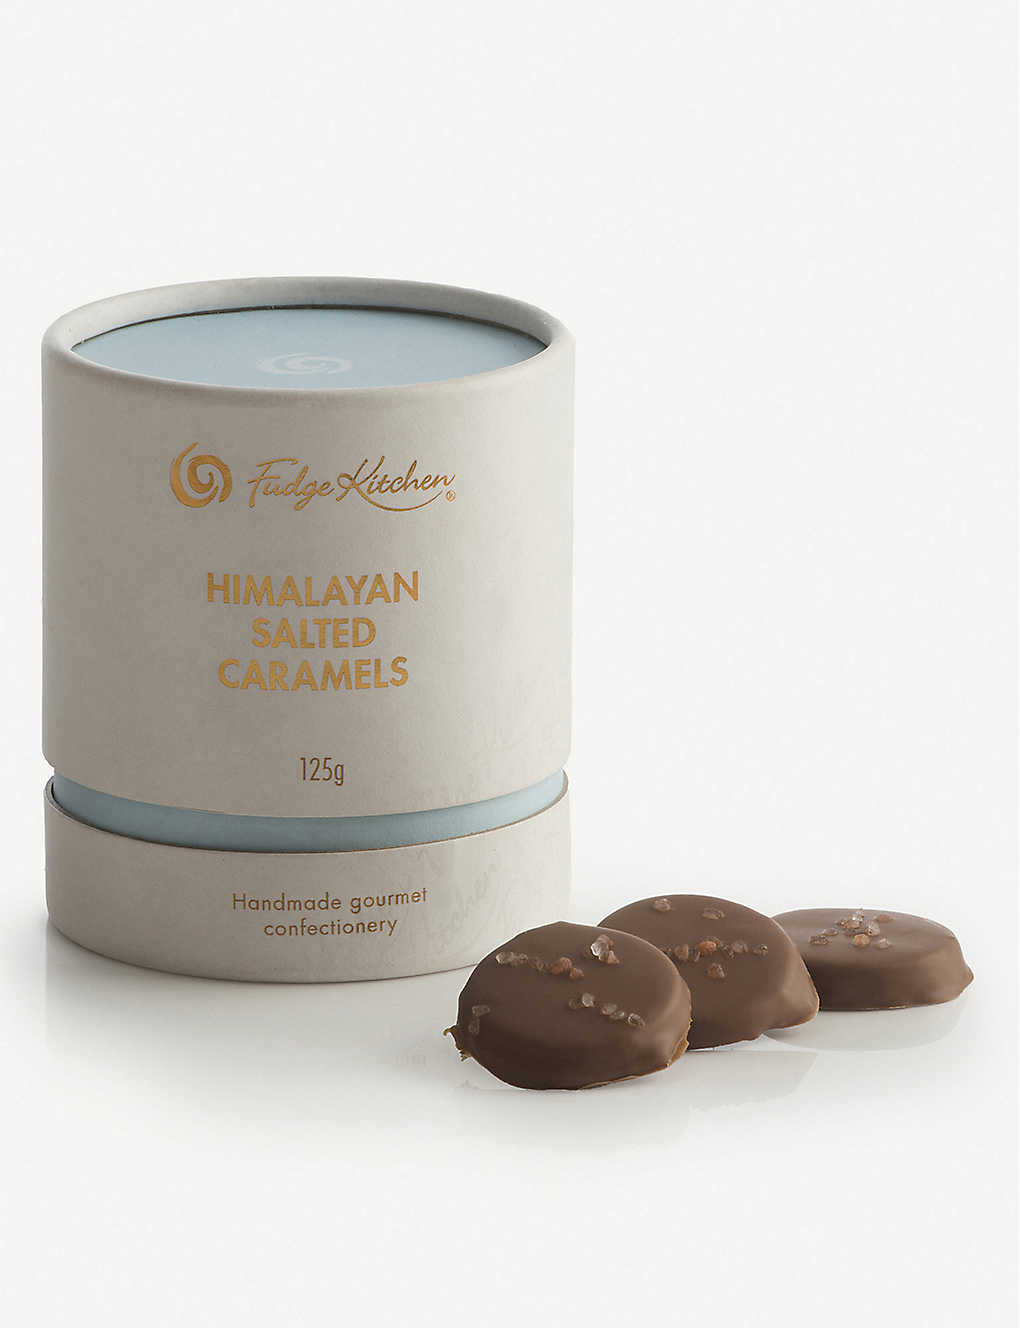 FUDGE KITCHEN: Milk chocolate salted caramels 125g